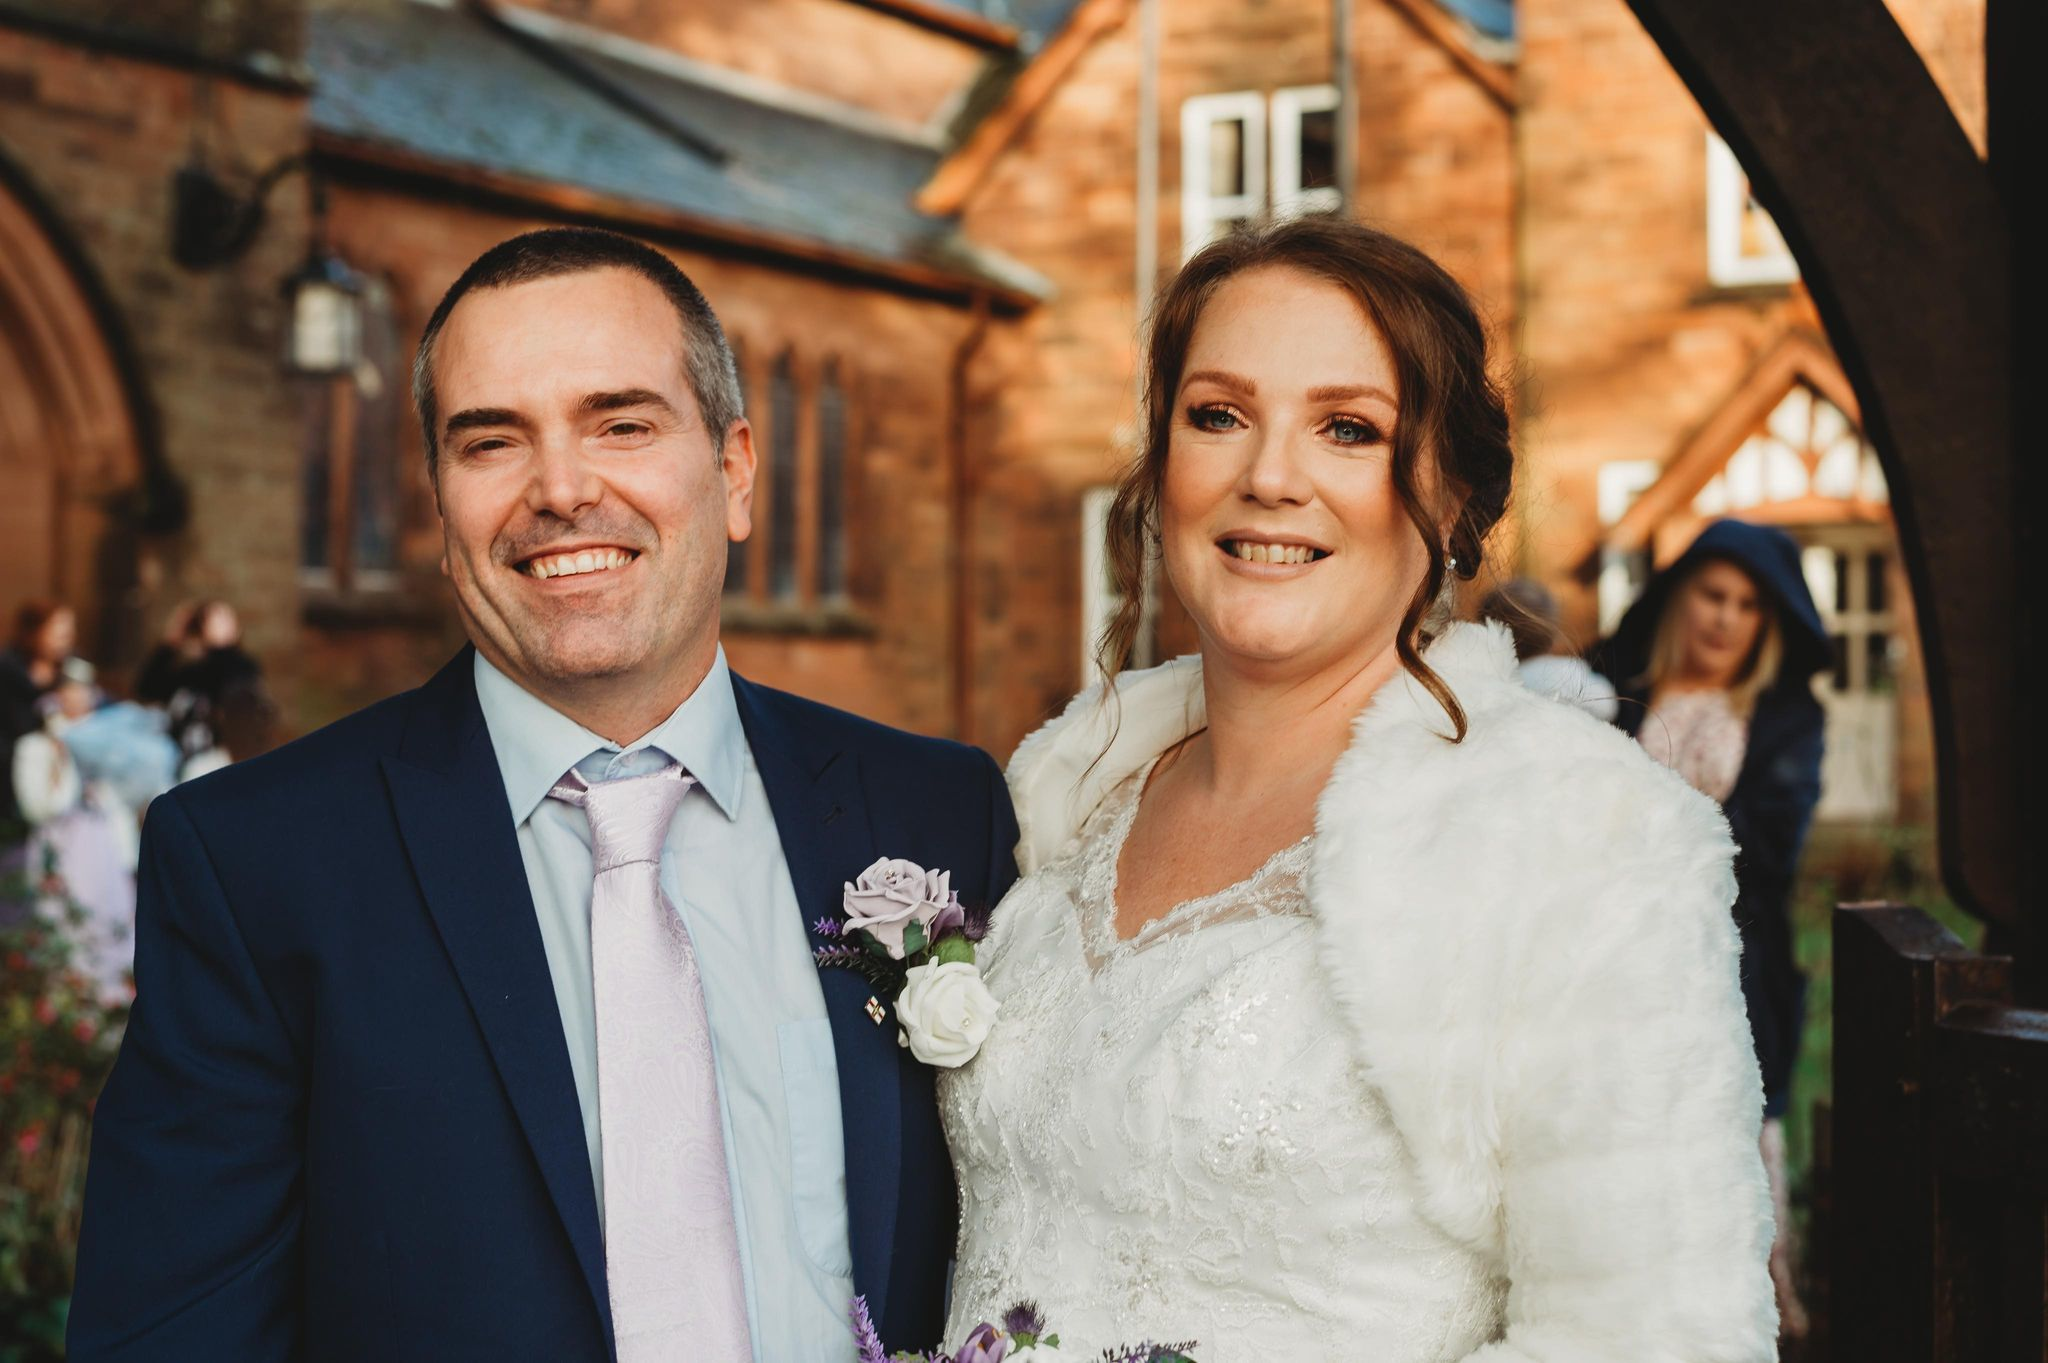 HAPPY: The newlyweds first met online in 2017 whilst living in Guernsey. Kolette Cartmel Photography